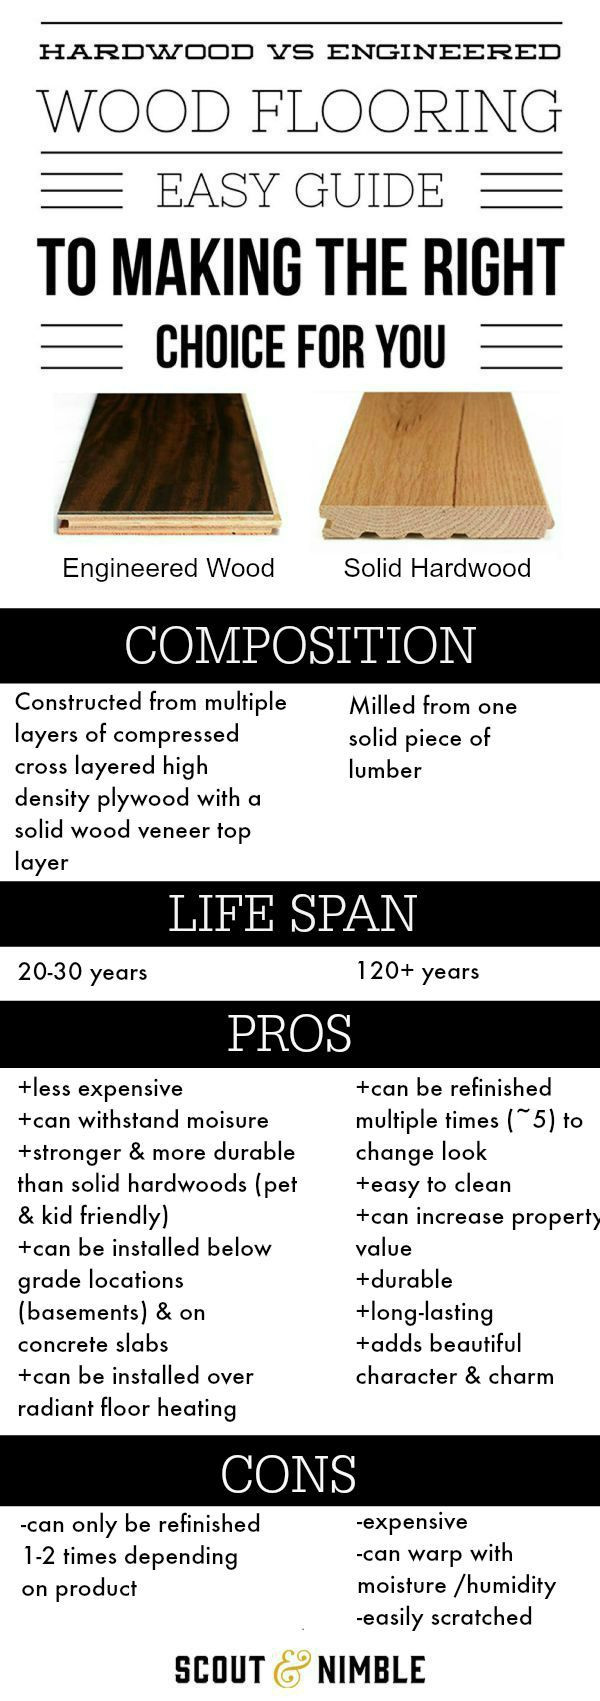 turman hardwood flooring colors of 22 best wood tile images on pinterest my house ground covering intended for best woodworking resource